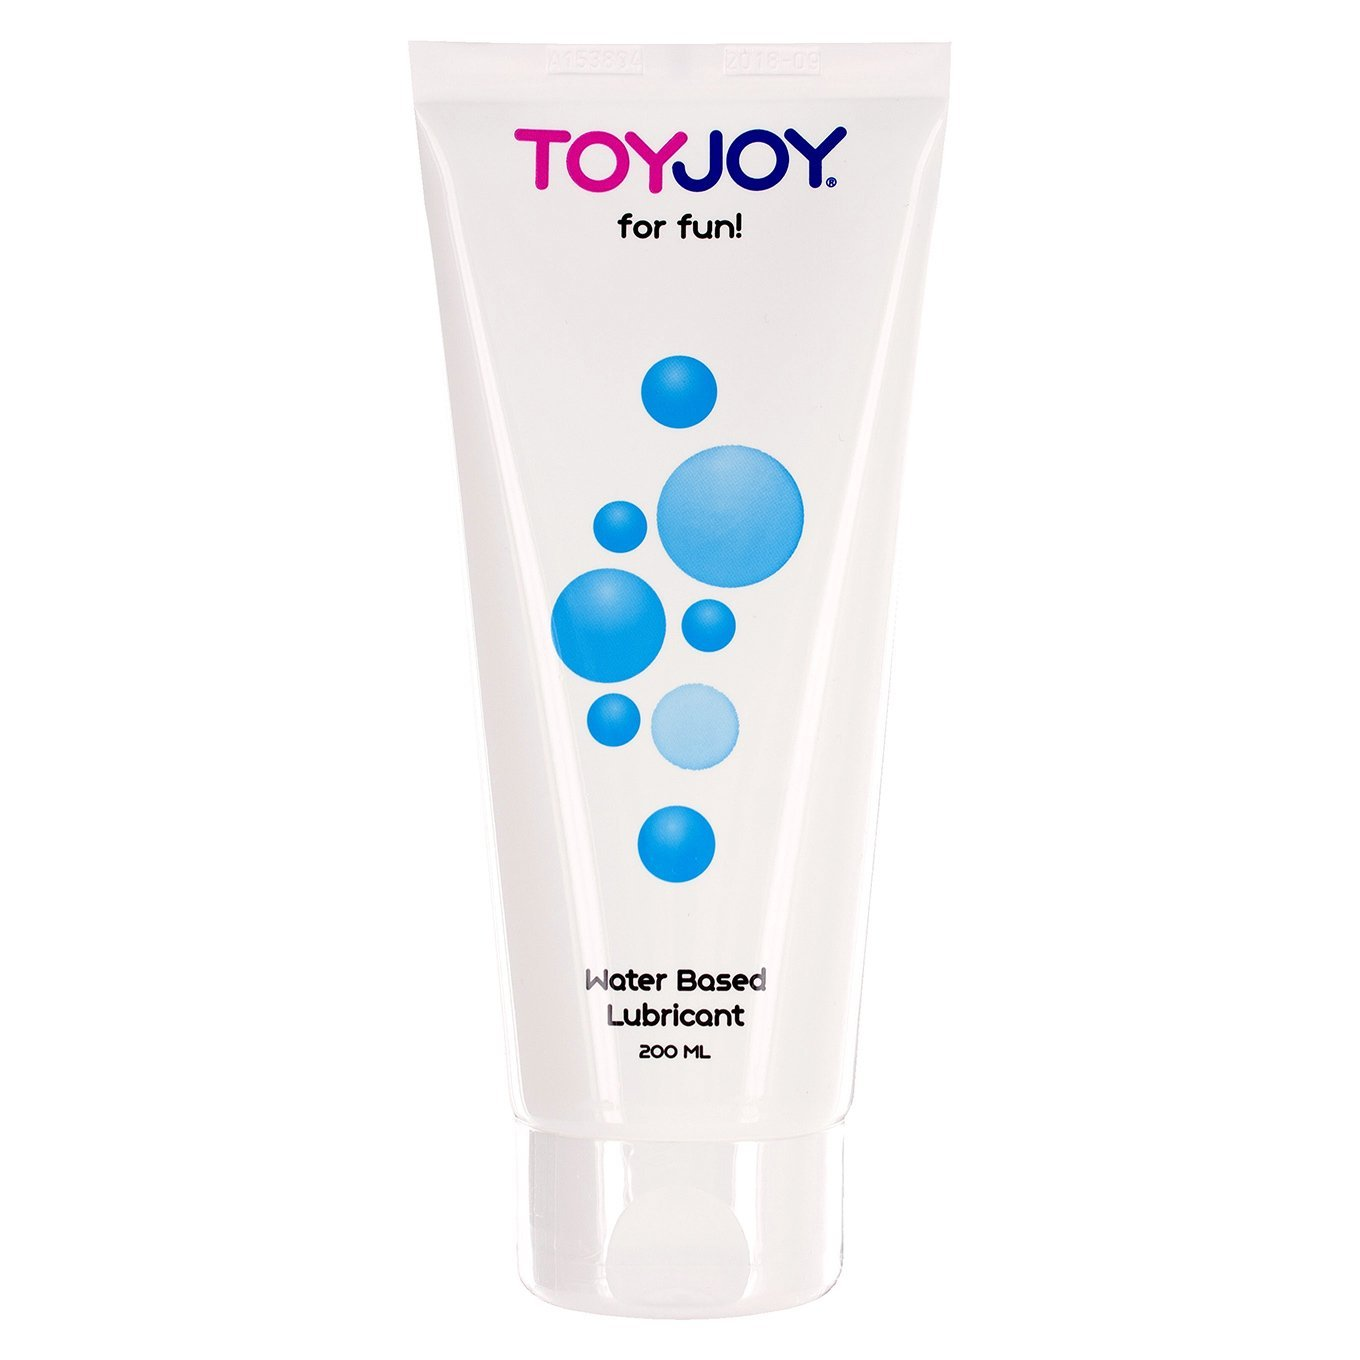 ToyJoy - Waterbased Lubricant 200 ml (Lube) Lube (Water Based) Singapore